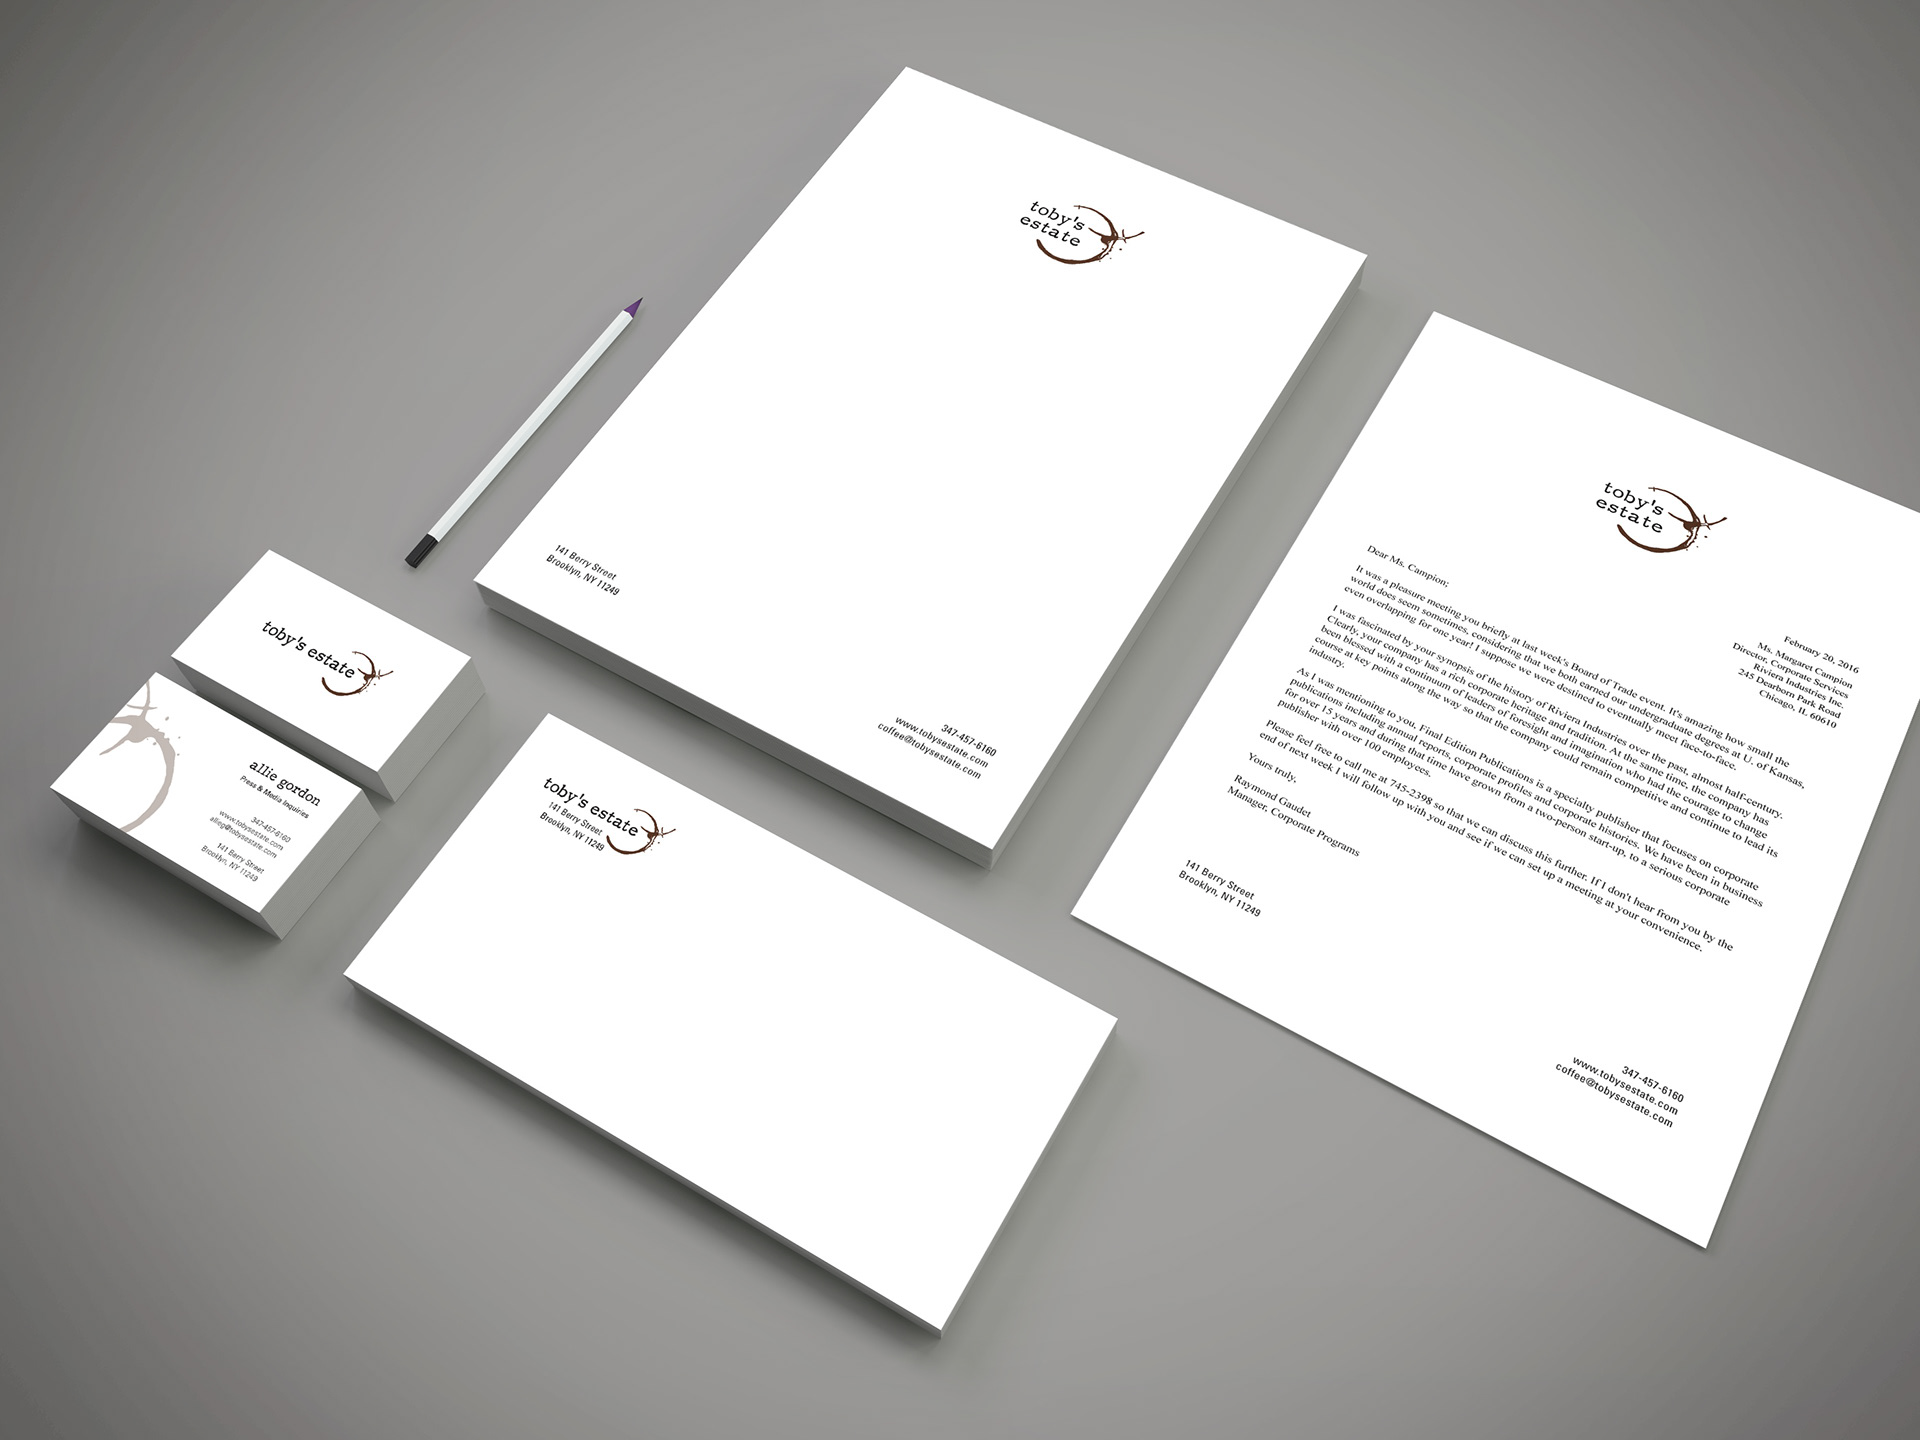 Ma Designs Studio - Toby\'s Estate - Branding